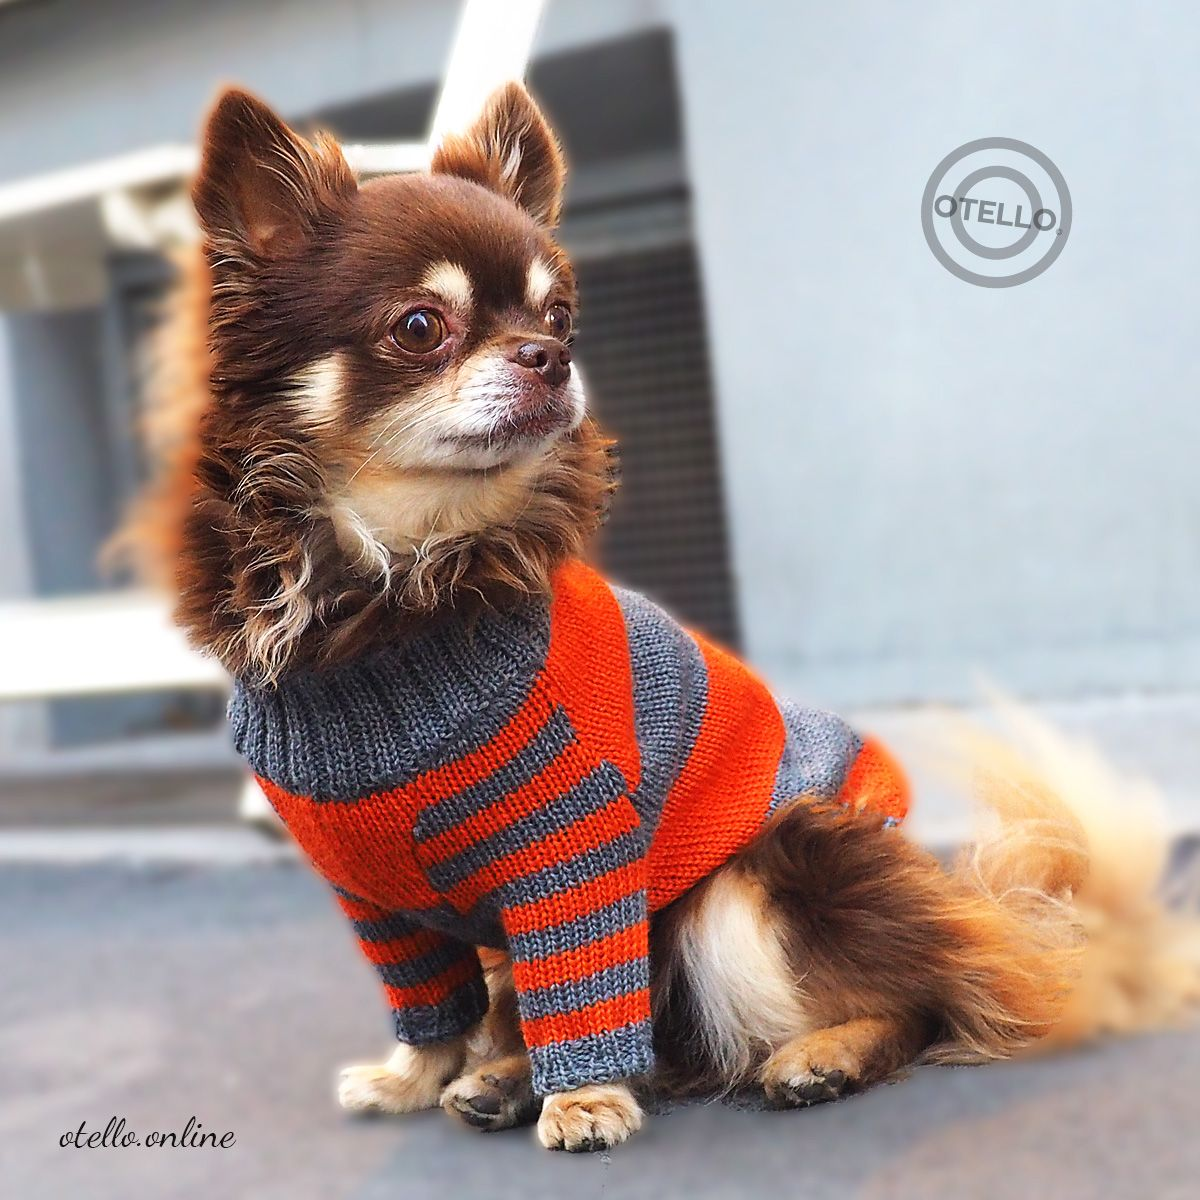 Otello The Merino Dog Pullover There S A Reason That Your Mother Always Told You To Pack A Sweater Dogsweat Susseste Haustiere Hunde Pullover Tierbabys